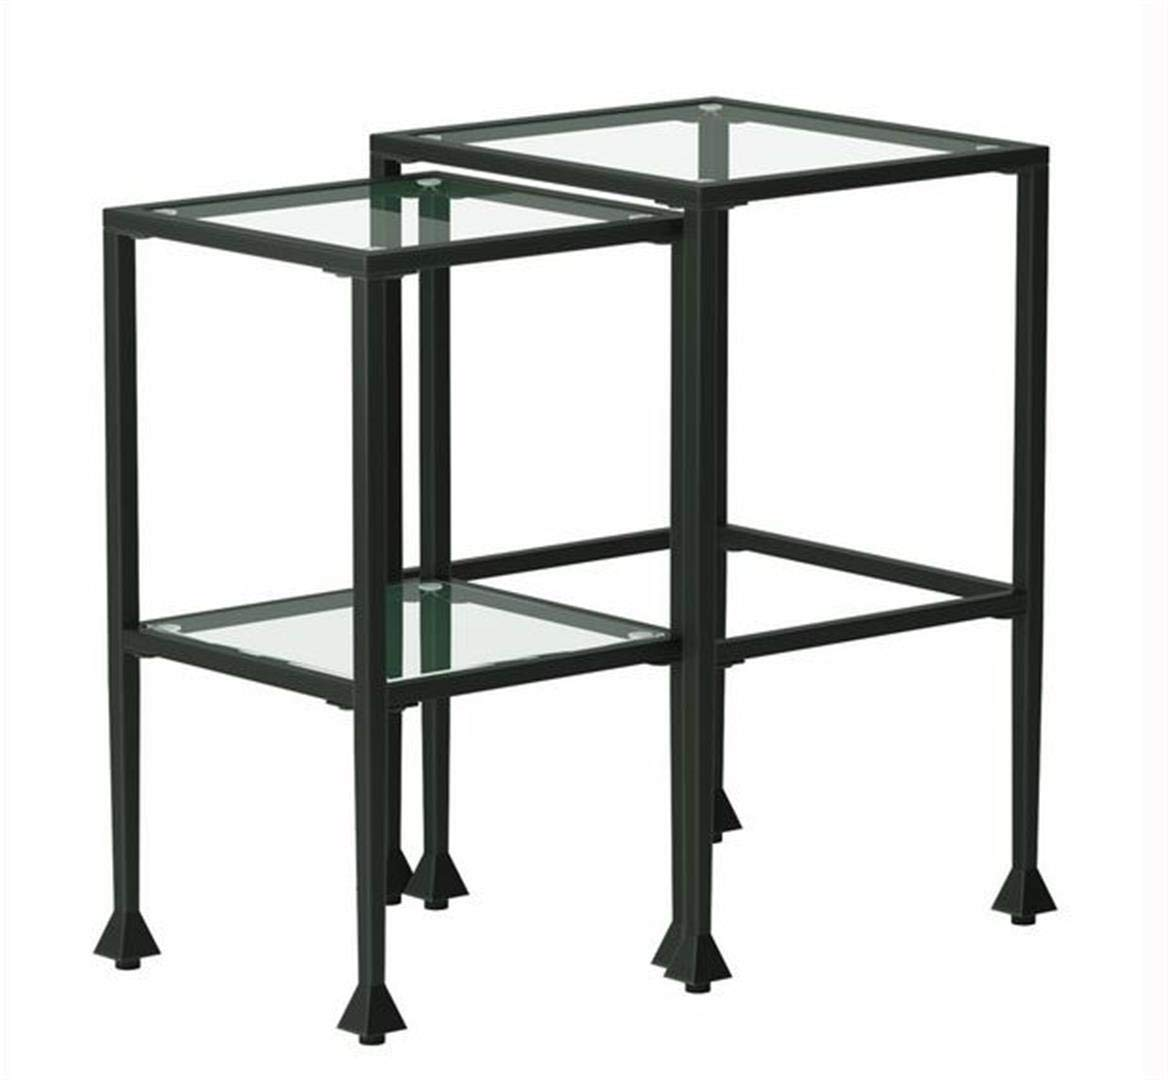 2-piece Glass and Metal Nesting Tables Black by Coaster Home Furnishings